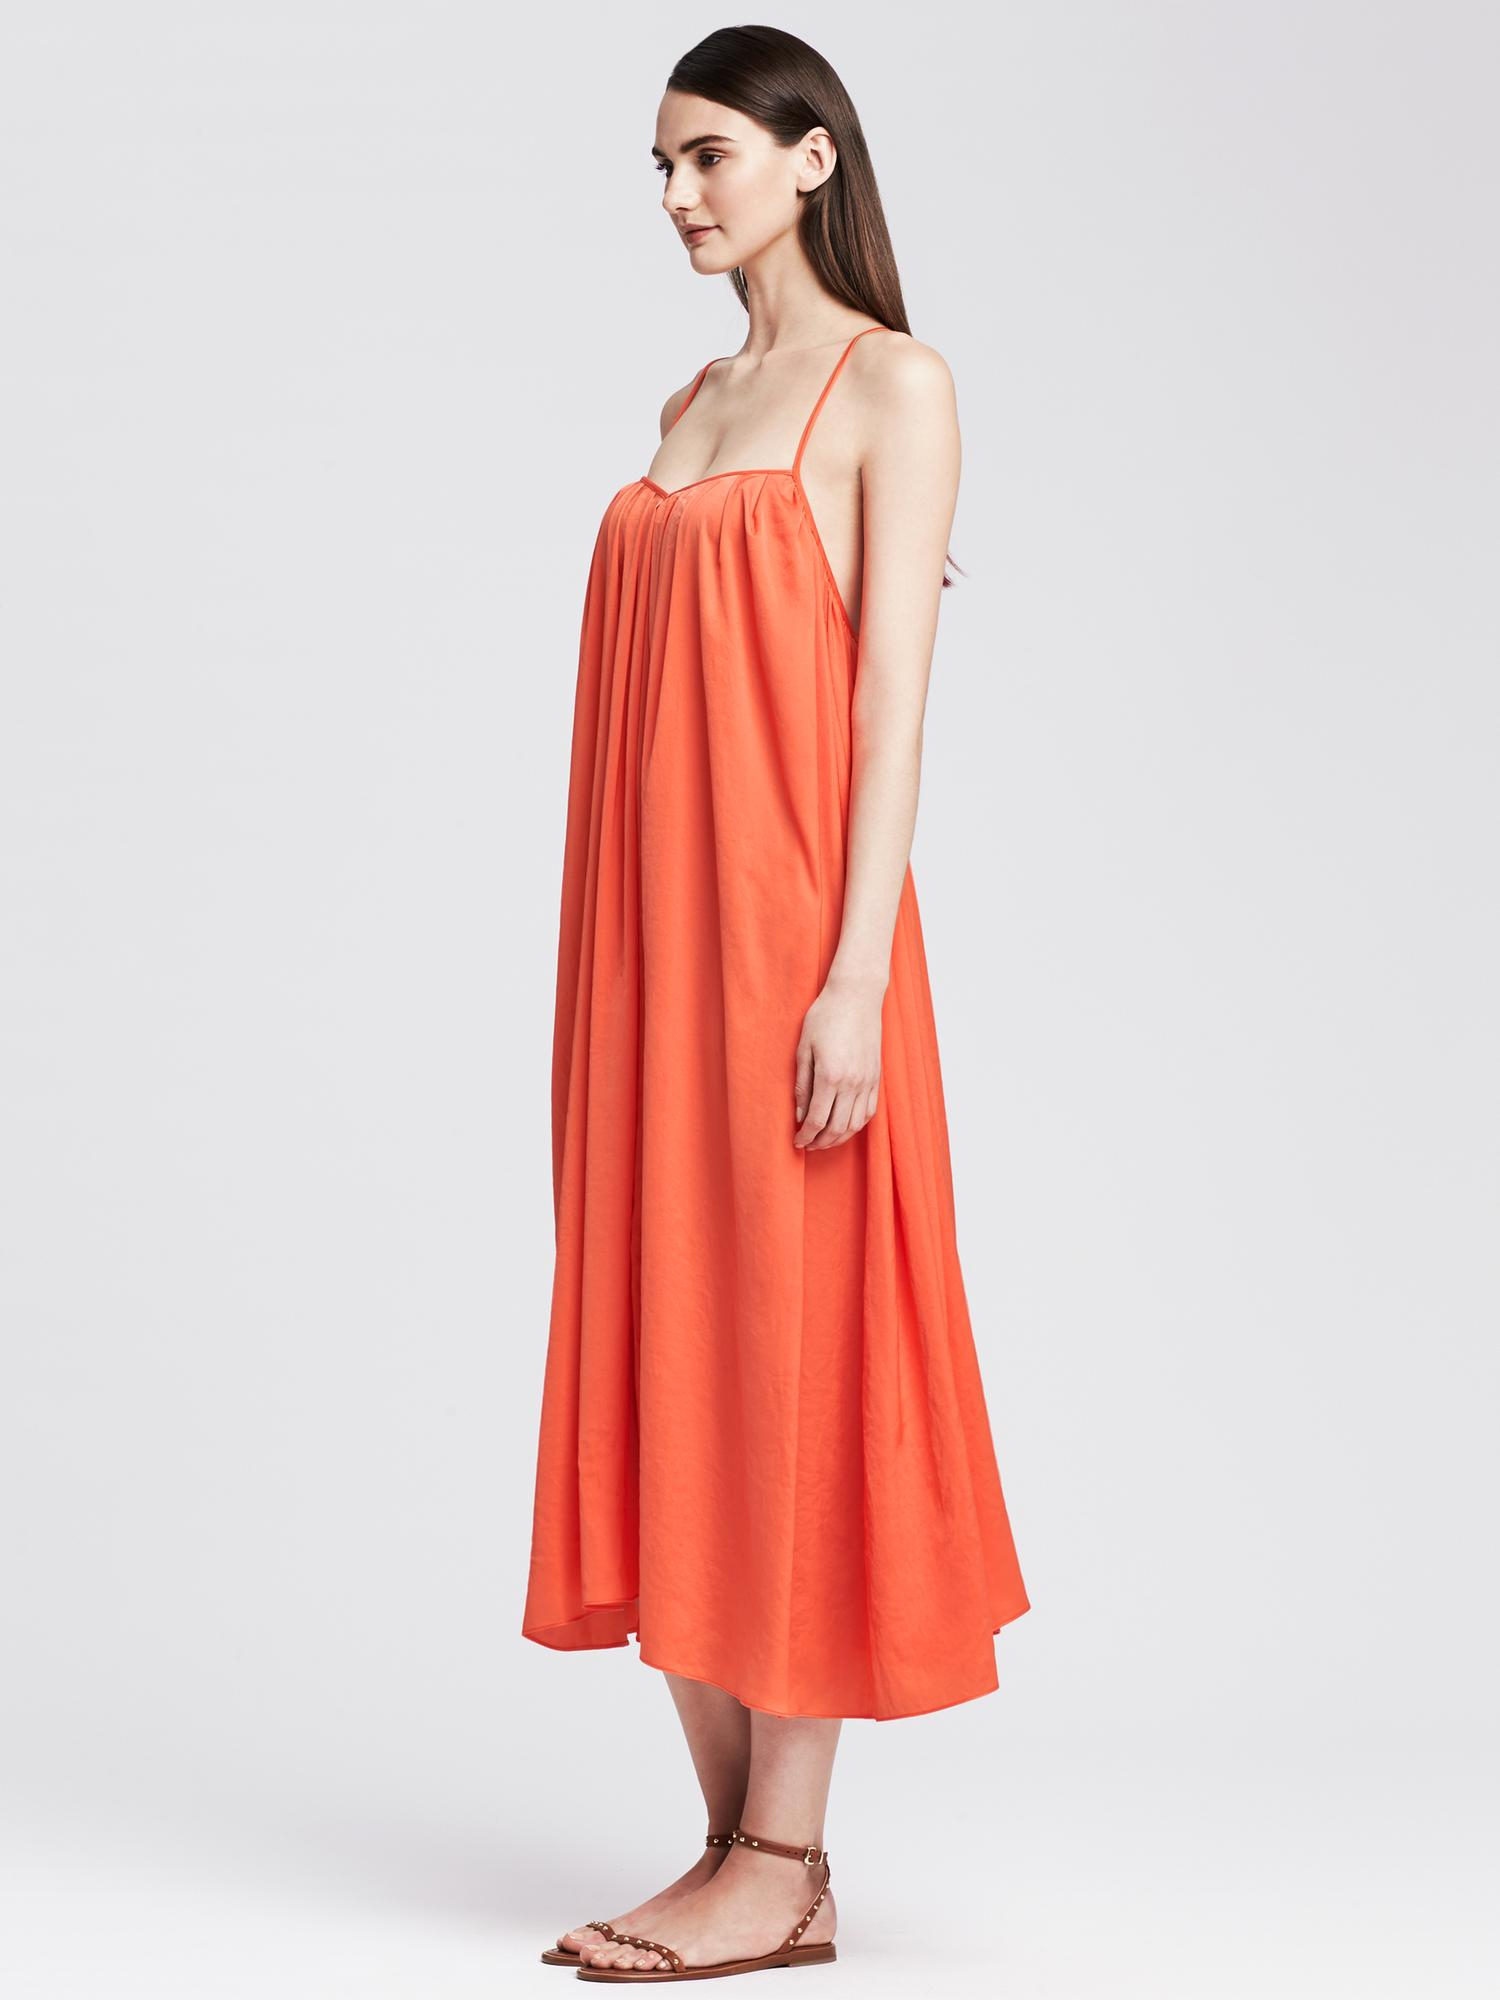 d24e4c82703 Banana Republic Trapeze Dress in Orange - Lyst